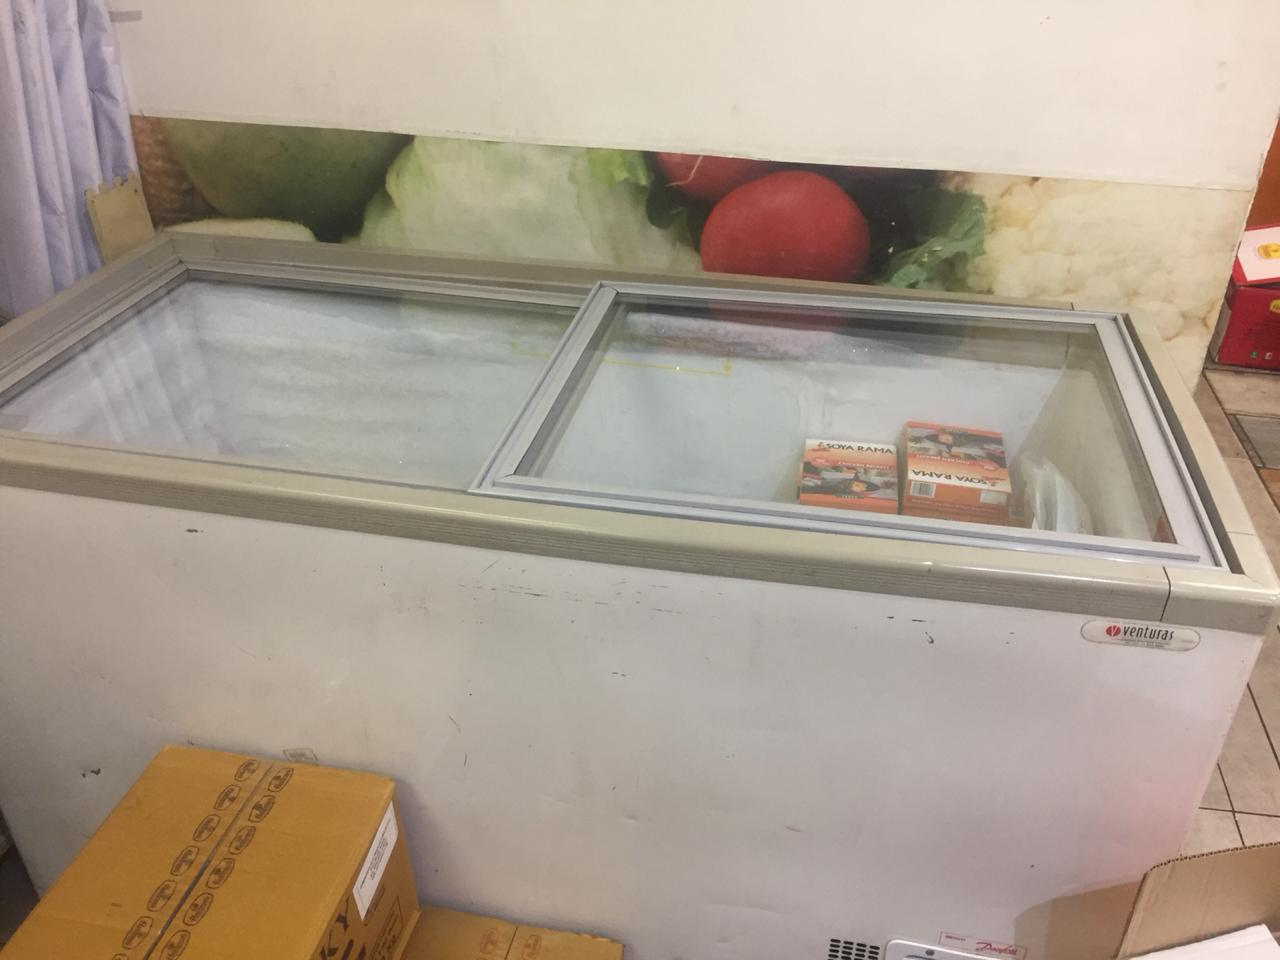 Cheest Freezer For Sale